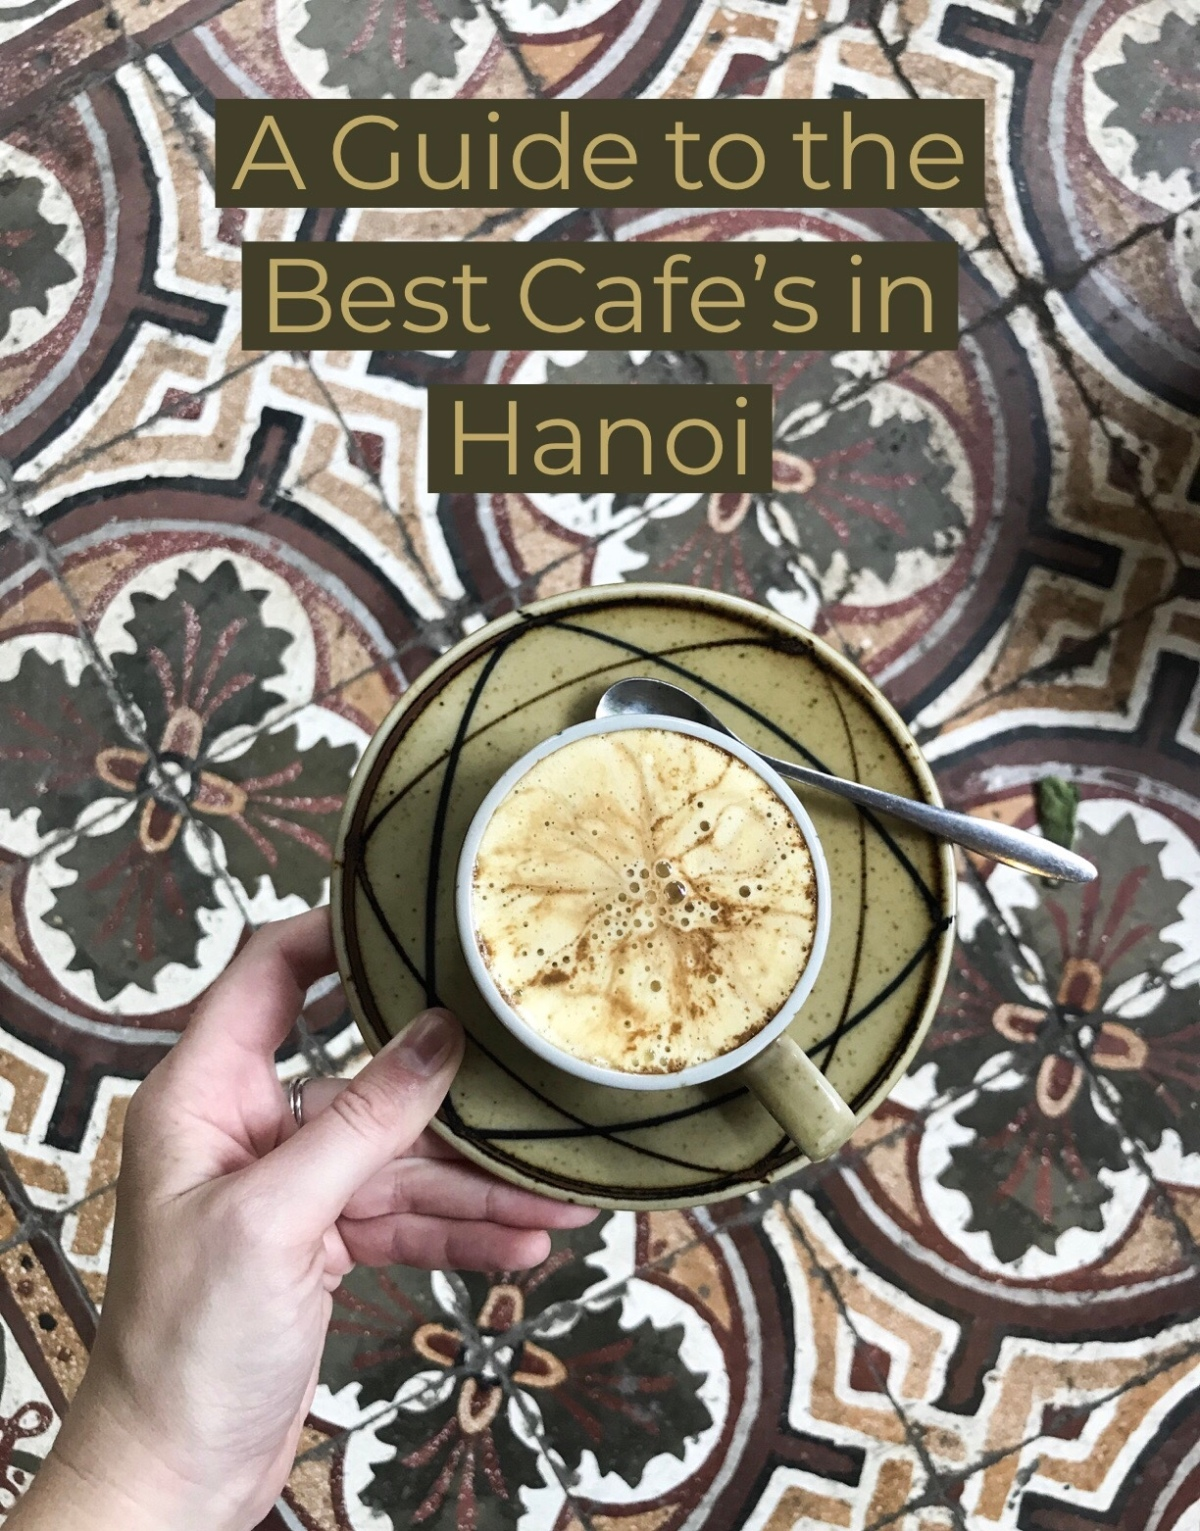 A Guide to the Best Cafe's inHanoi